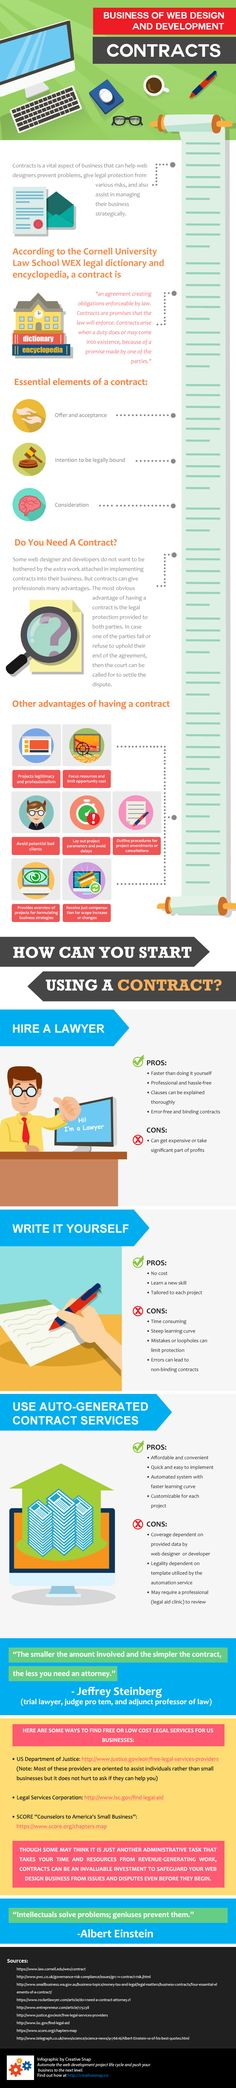 Web Design Contract Templates Web Design Contracts Pinterest - contract essential elements